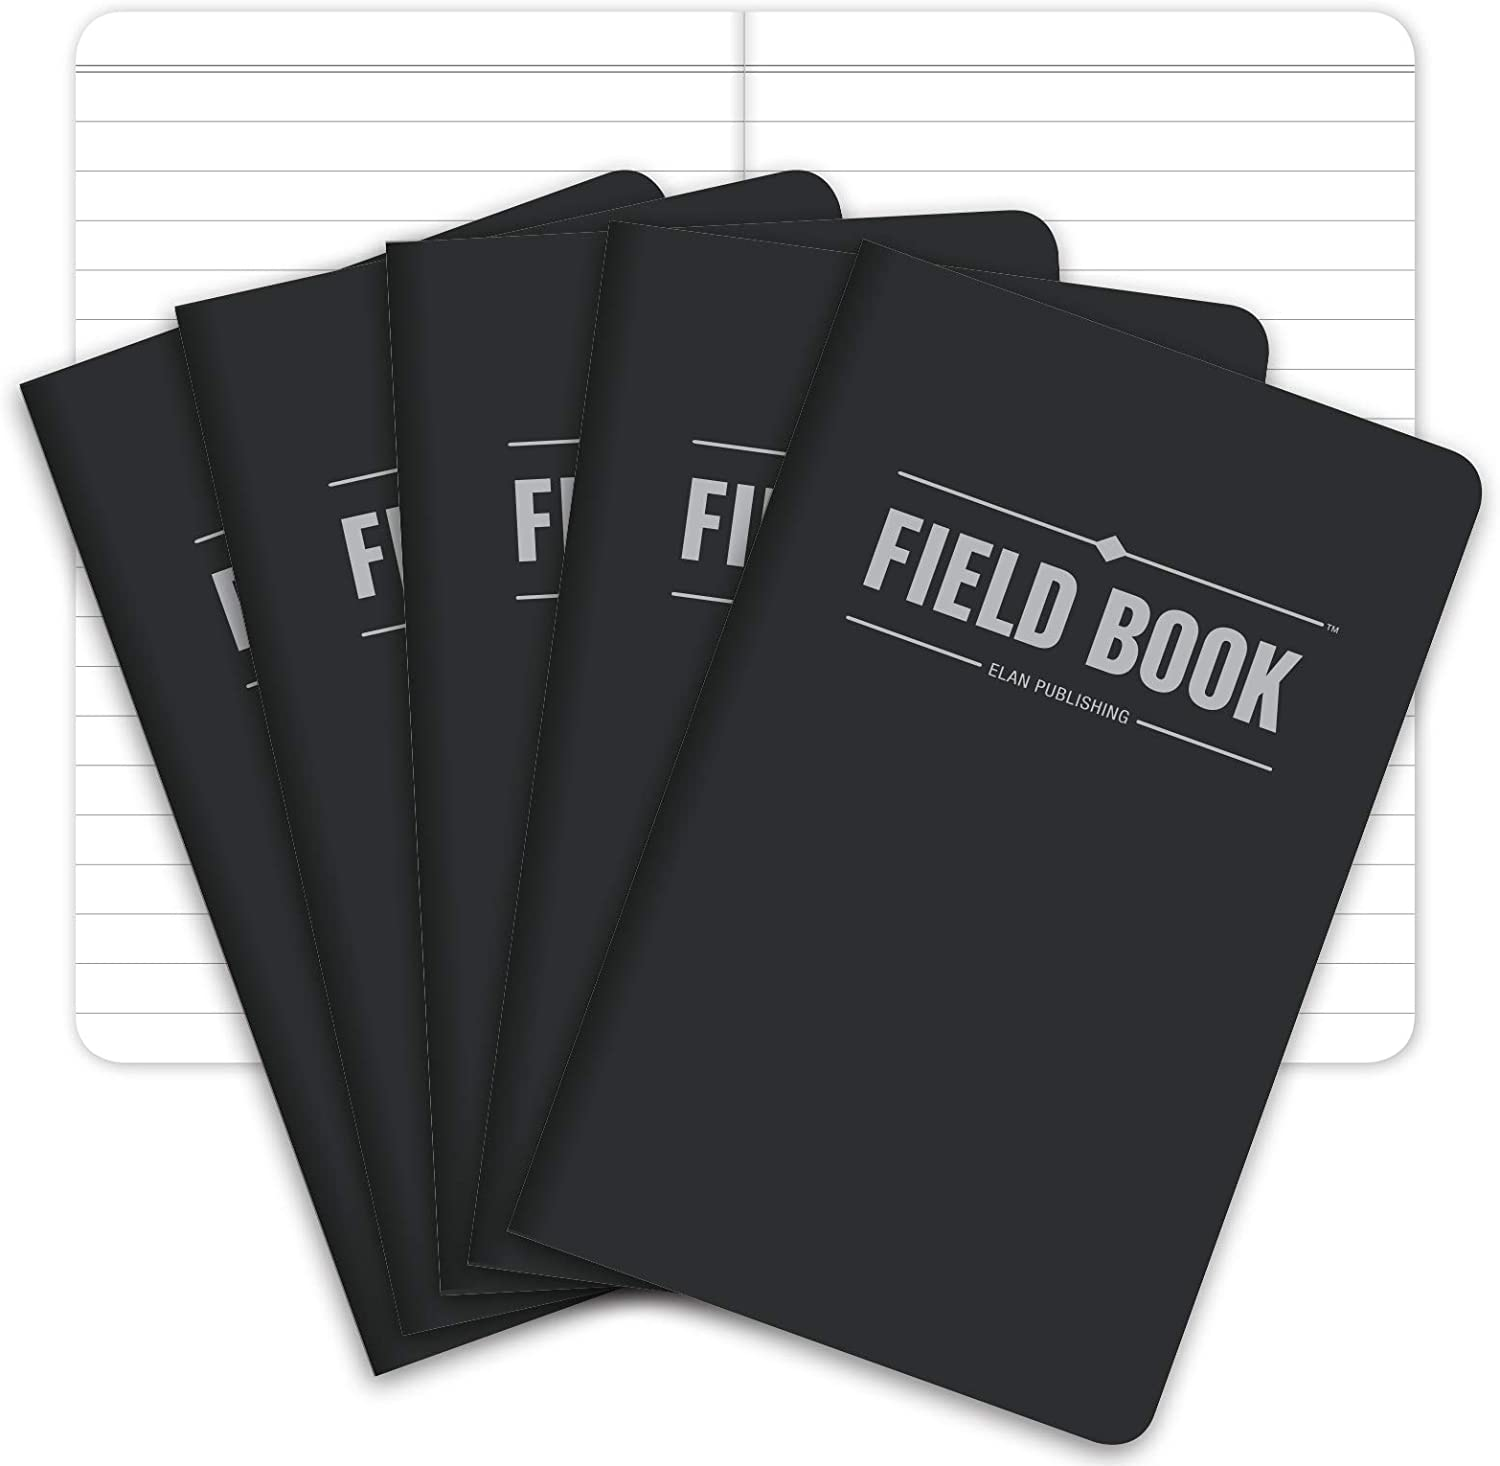 Pack of 5 Field Notebook Lined Memo Book Monet Patterns 3.5x5.5